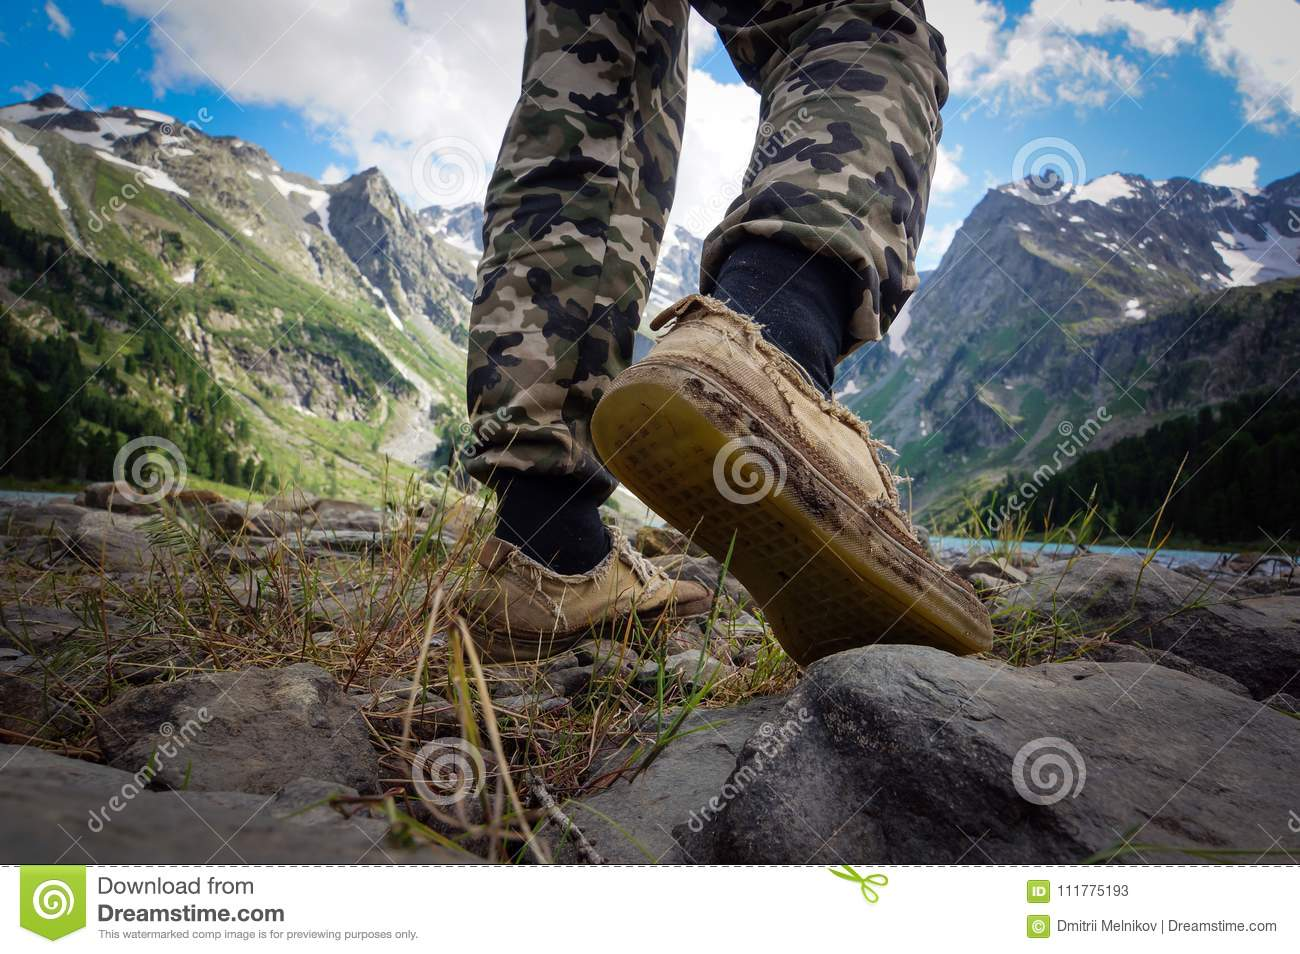 Feet boots hiking Traveler alone outdoor